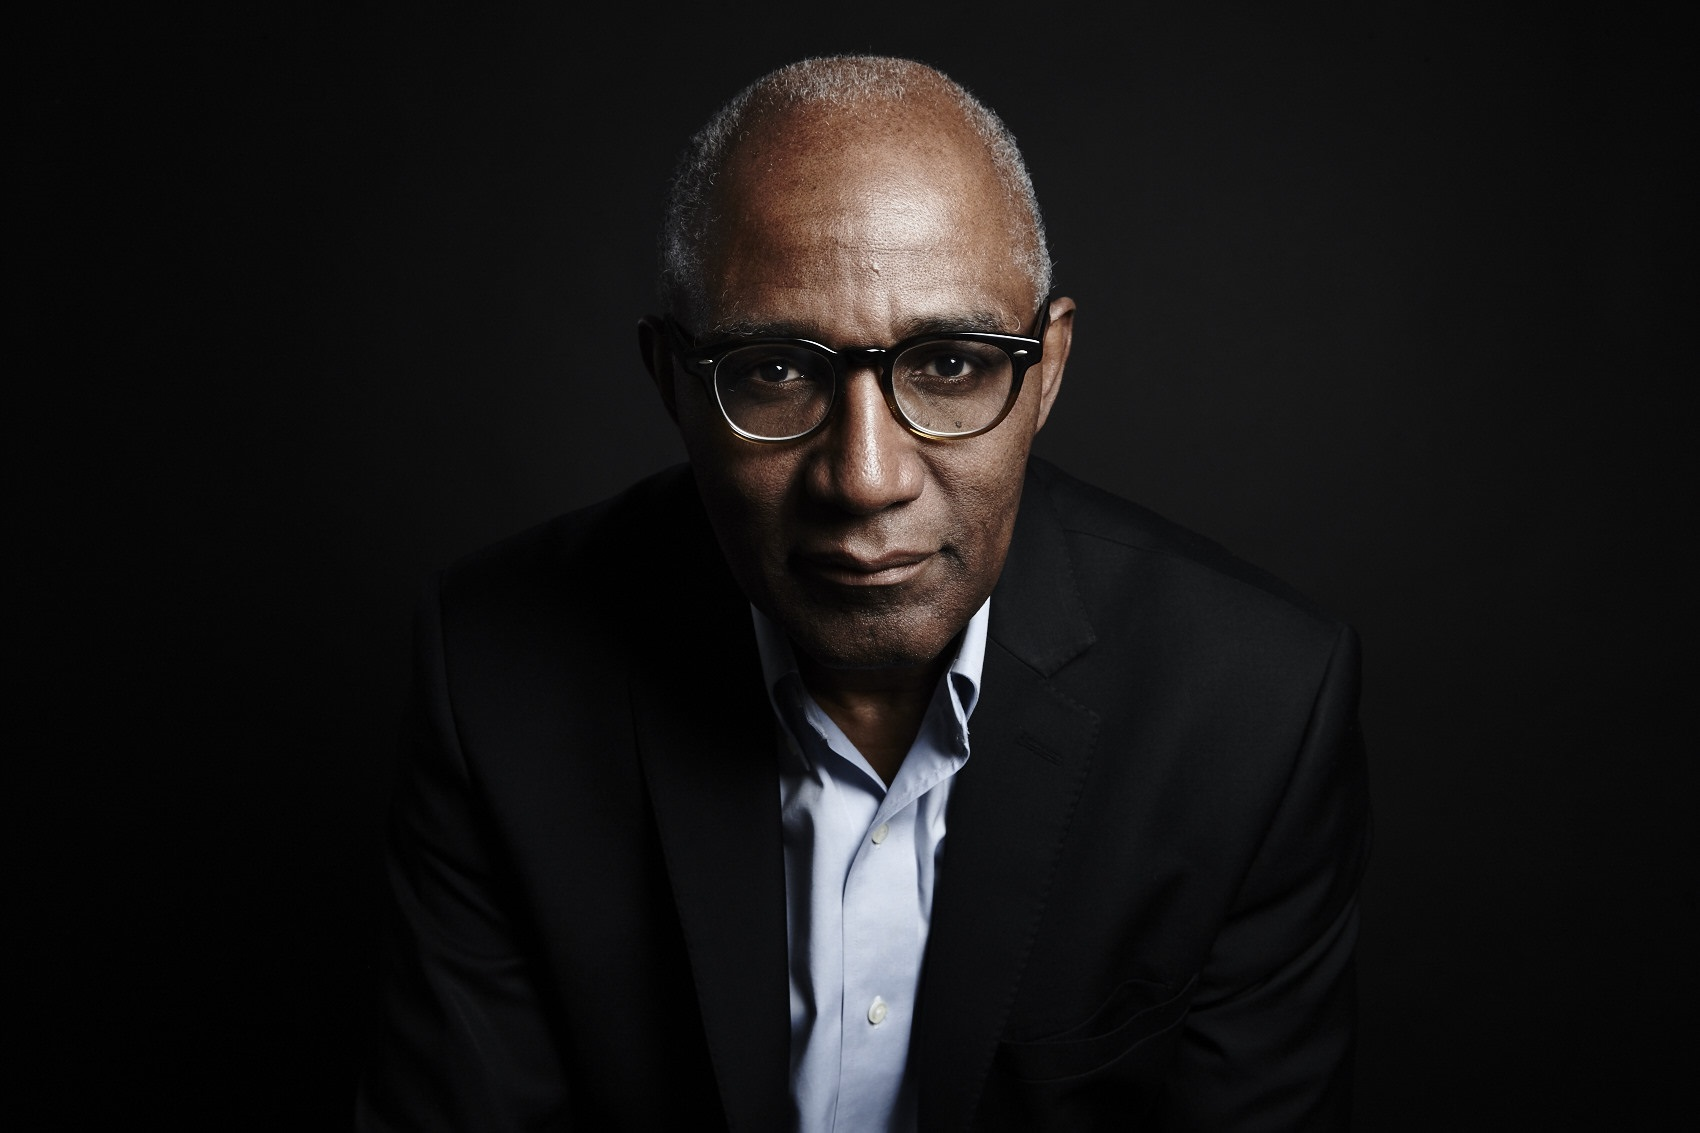 The Australian – Trevor Phillips Makes Frank Confessions in Things We Won't Say about Race That are True